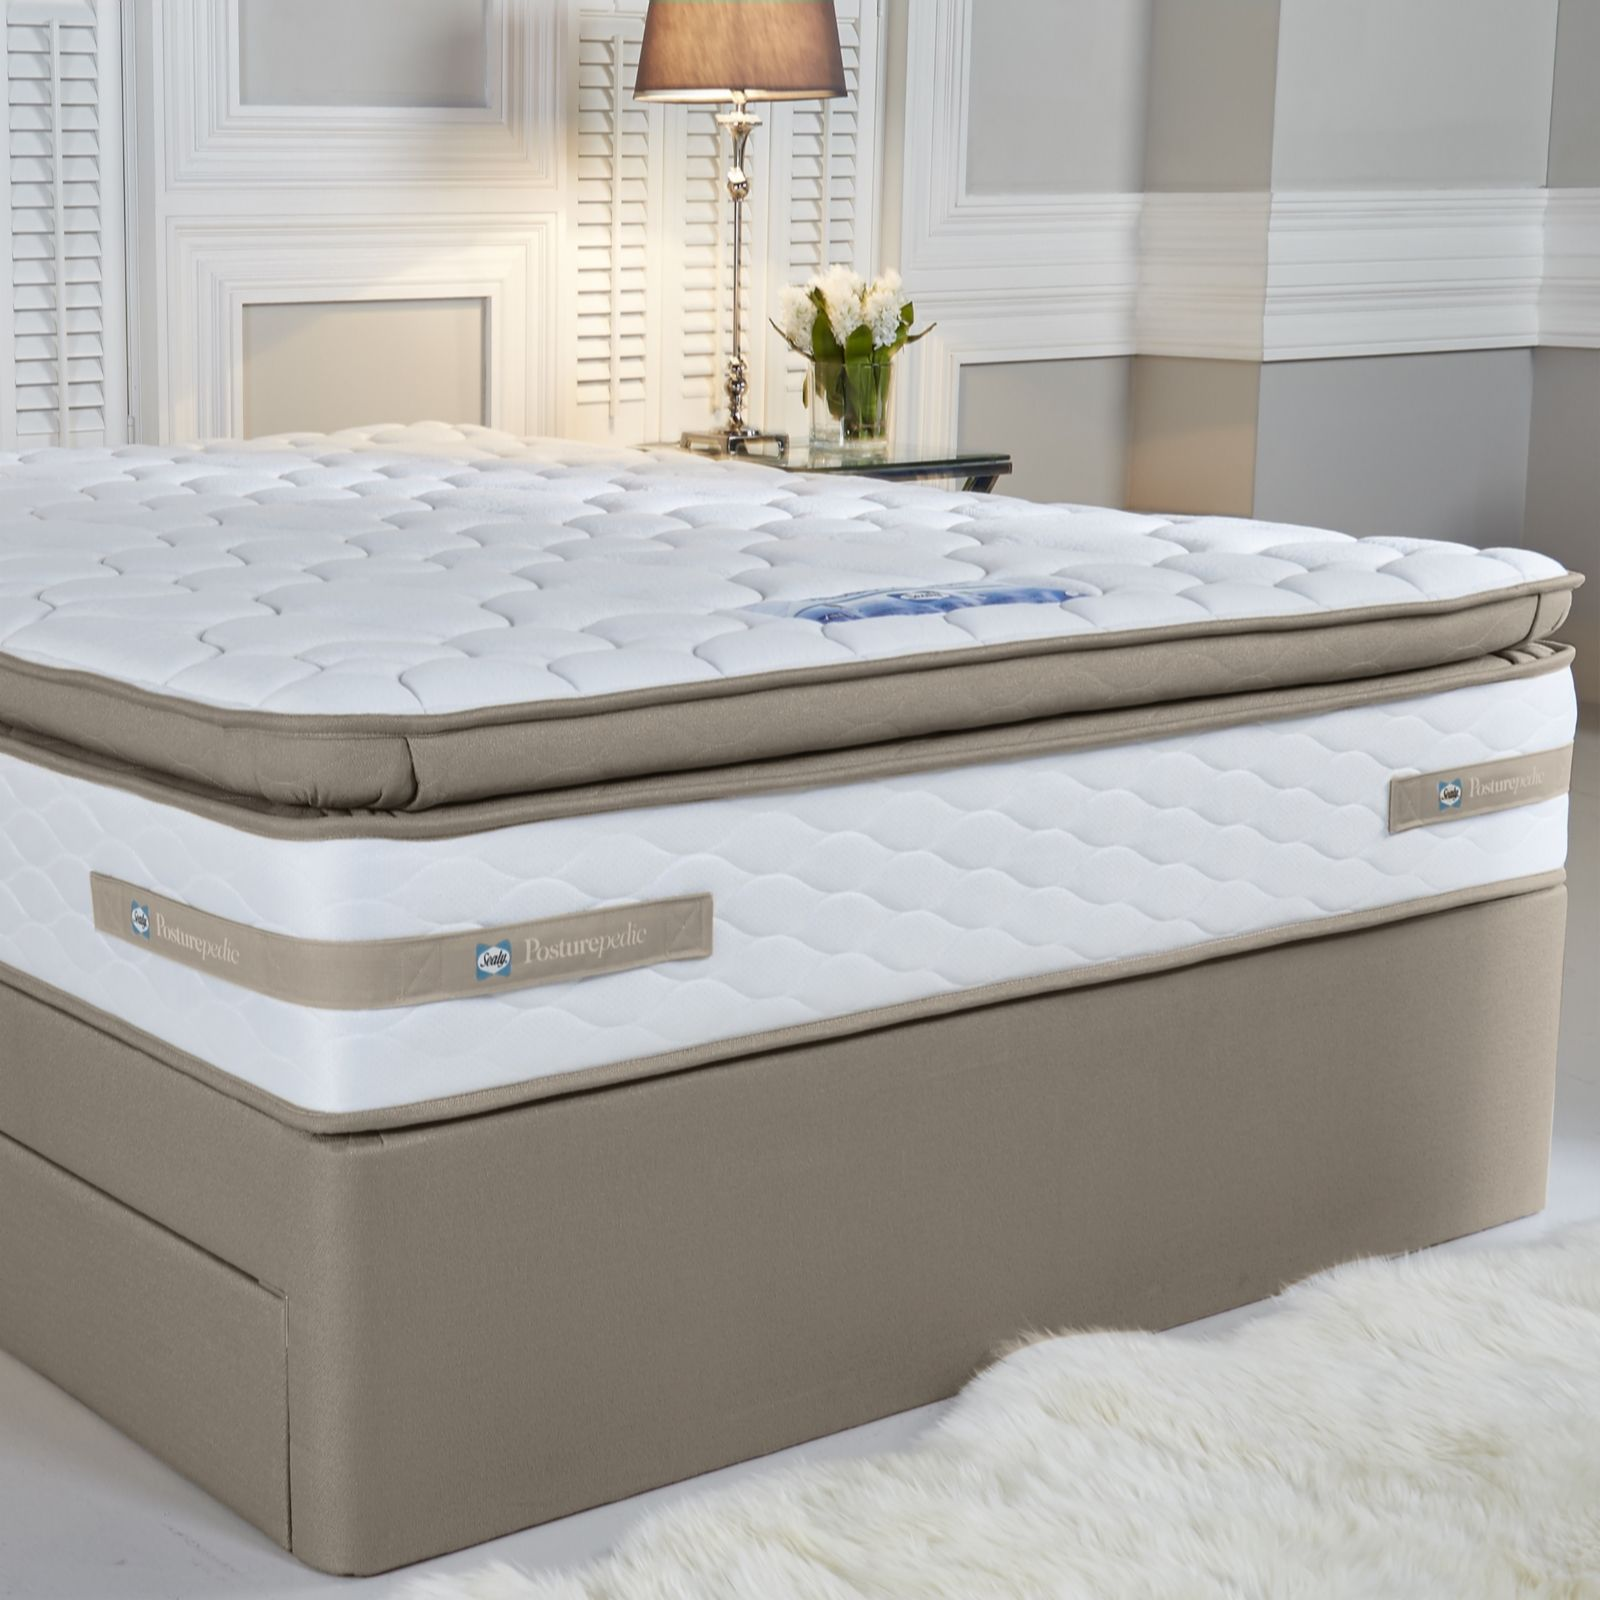 Sealy Posturepedic 660 Spring Geltex Pillow Top Mattress Page 1